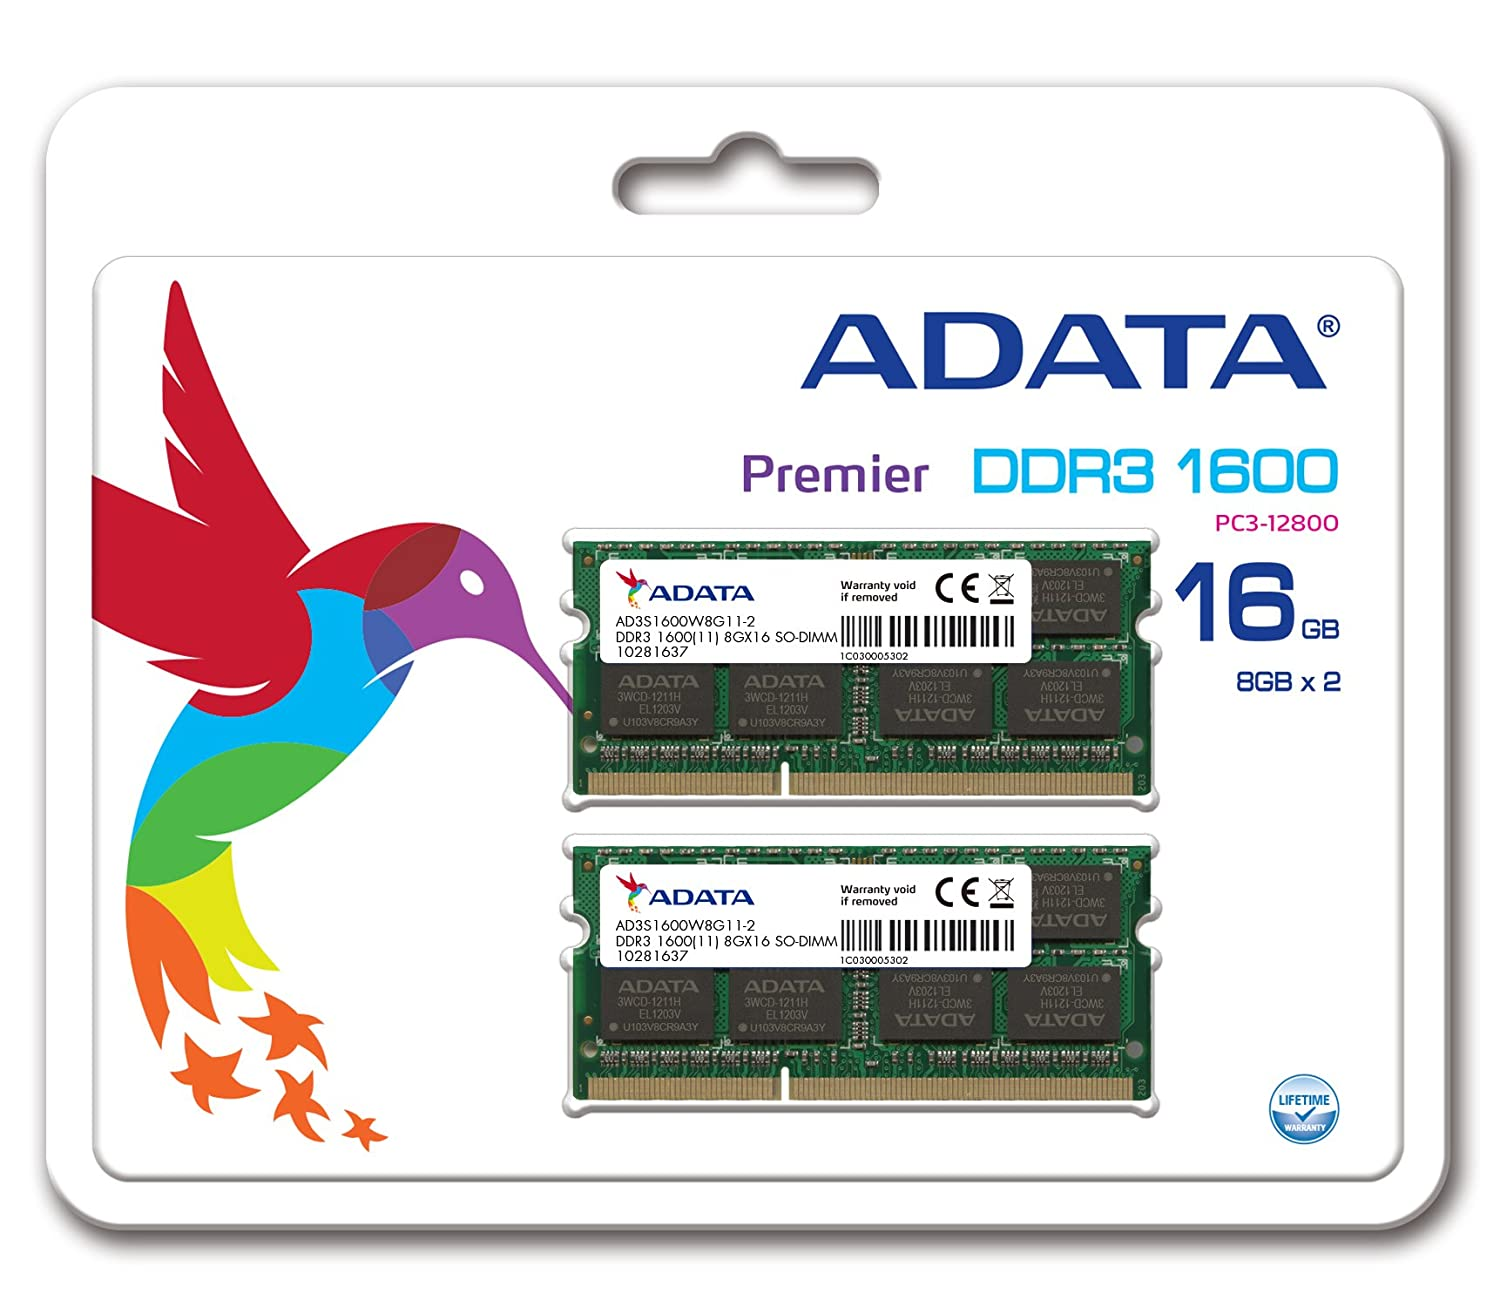 Adata Premier Pro Ddr3 1600mhz 16gb8 X 2 Memory Modules 4 Gb Pc12800 Kingston Untuk Pc Ad3s1600w8g11 At